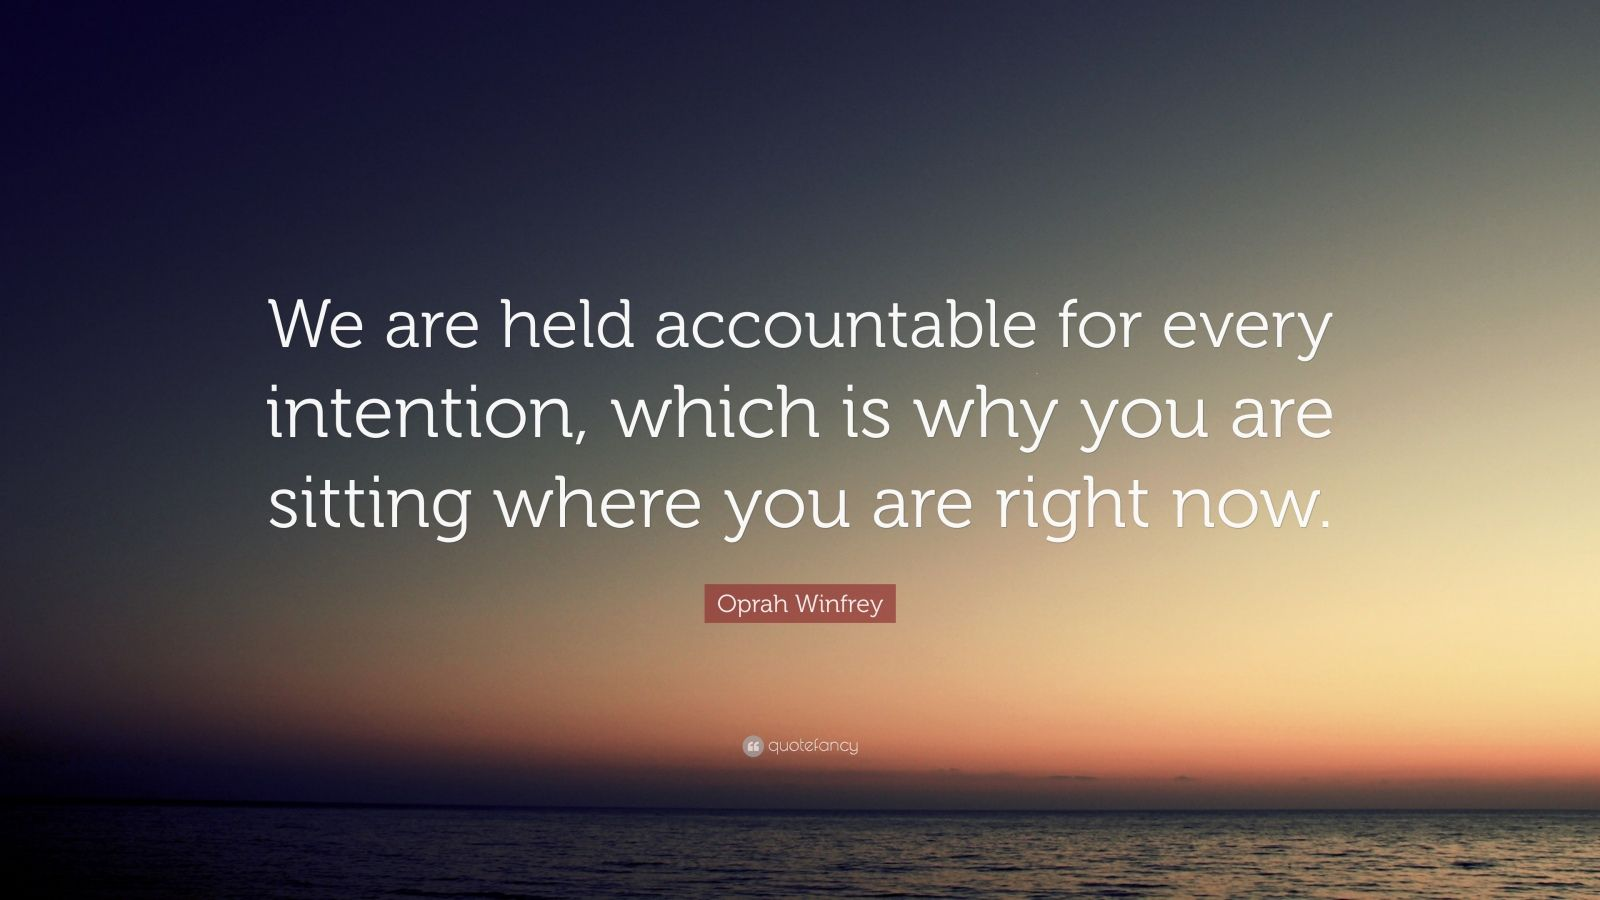 """Oprah Winfrey Quote: """"We are held accountable for every intention, which is why you are sitting where you are right now."""""""